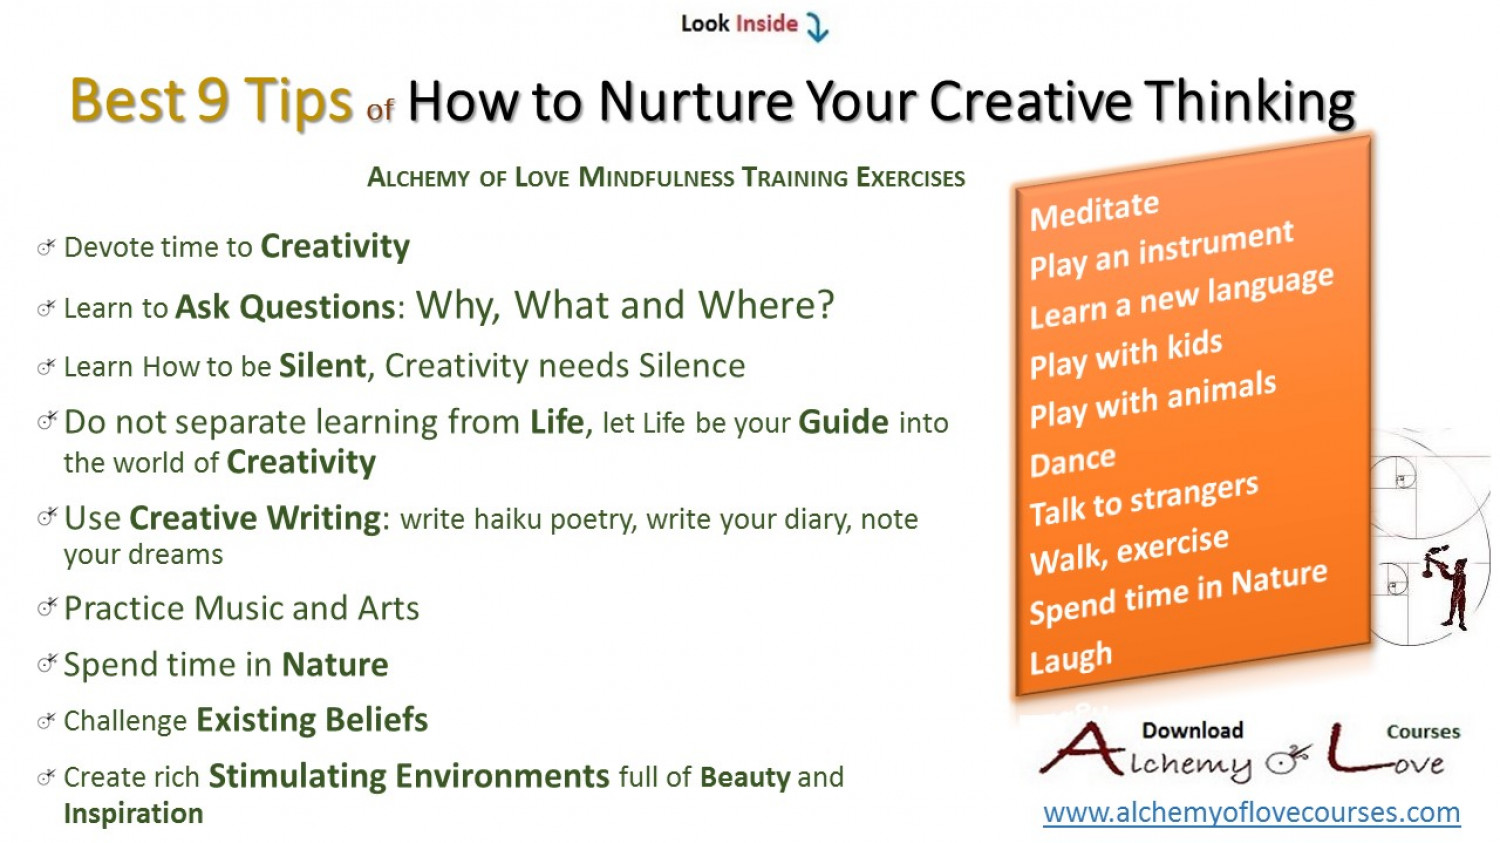 9 Tips How to Nurture Creative Thinking Infographic